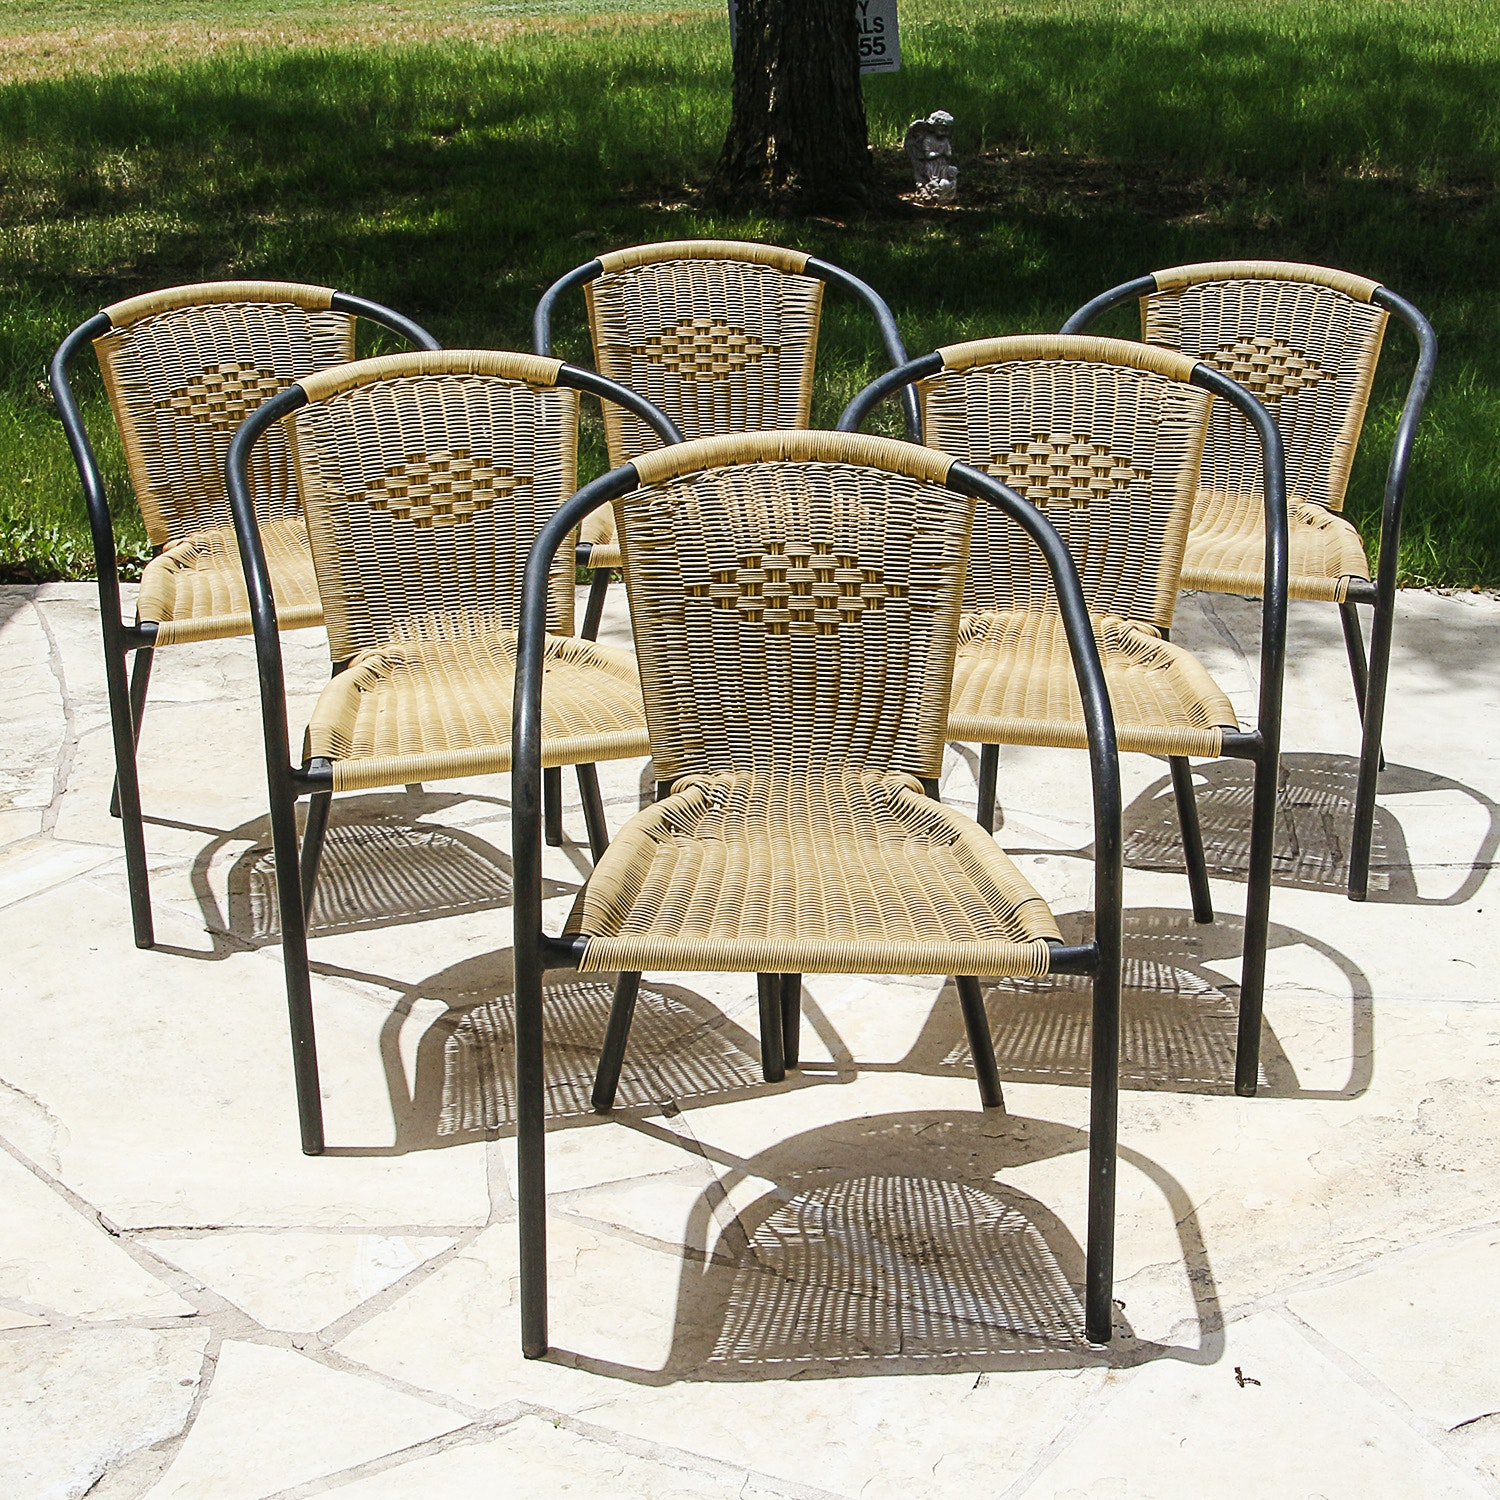 Six Metal and Wicker Woven Plastic Patio Chairs